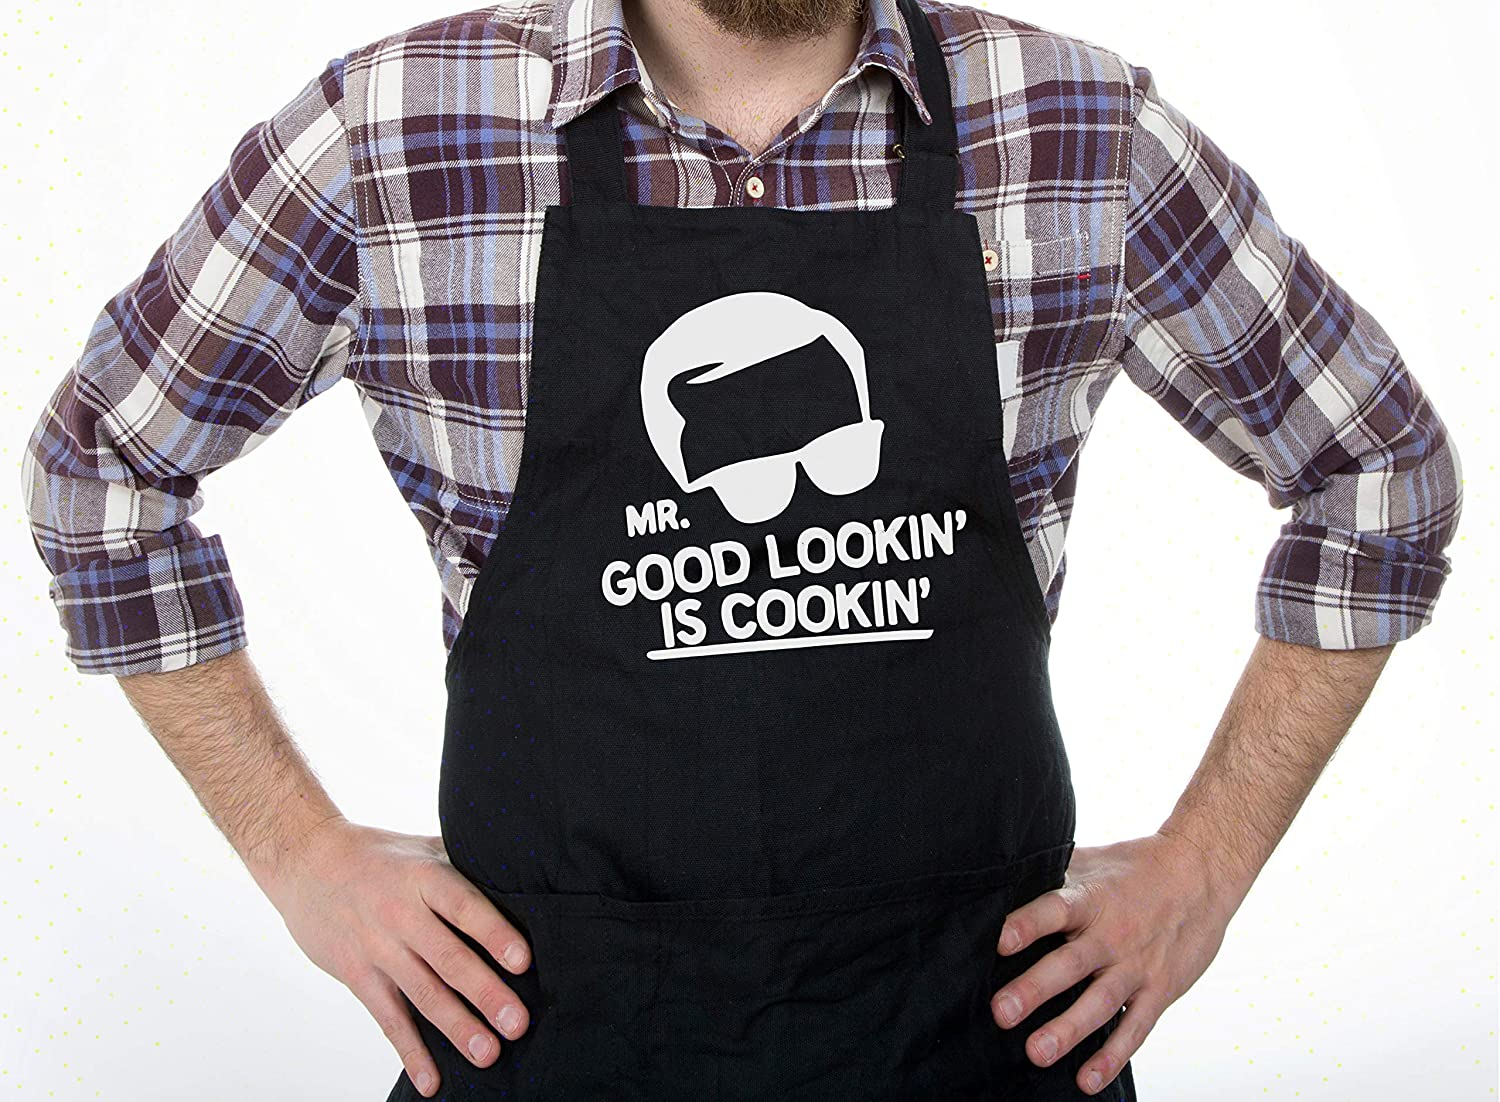 S.I.S Apron For Men | Mr Good Lookin' Is Cookin' Apron | Funny BBQ Apron